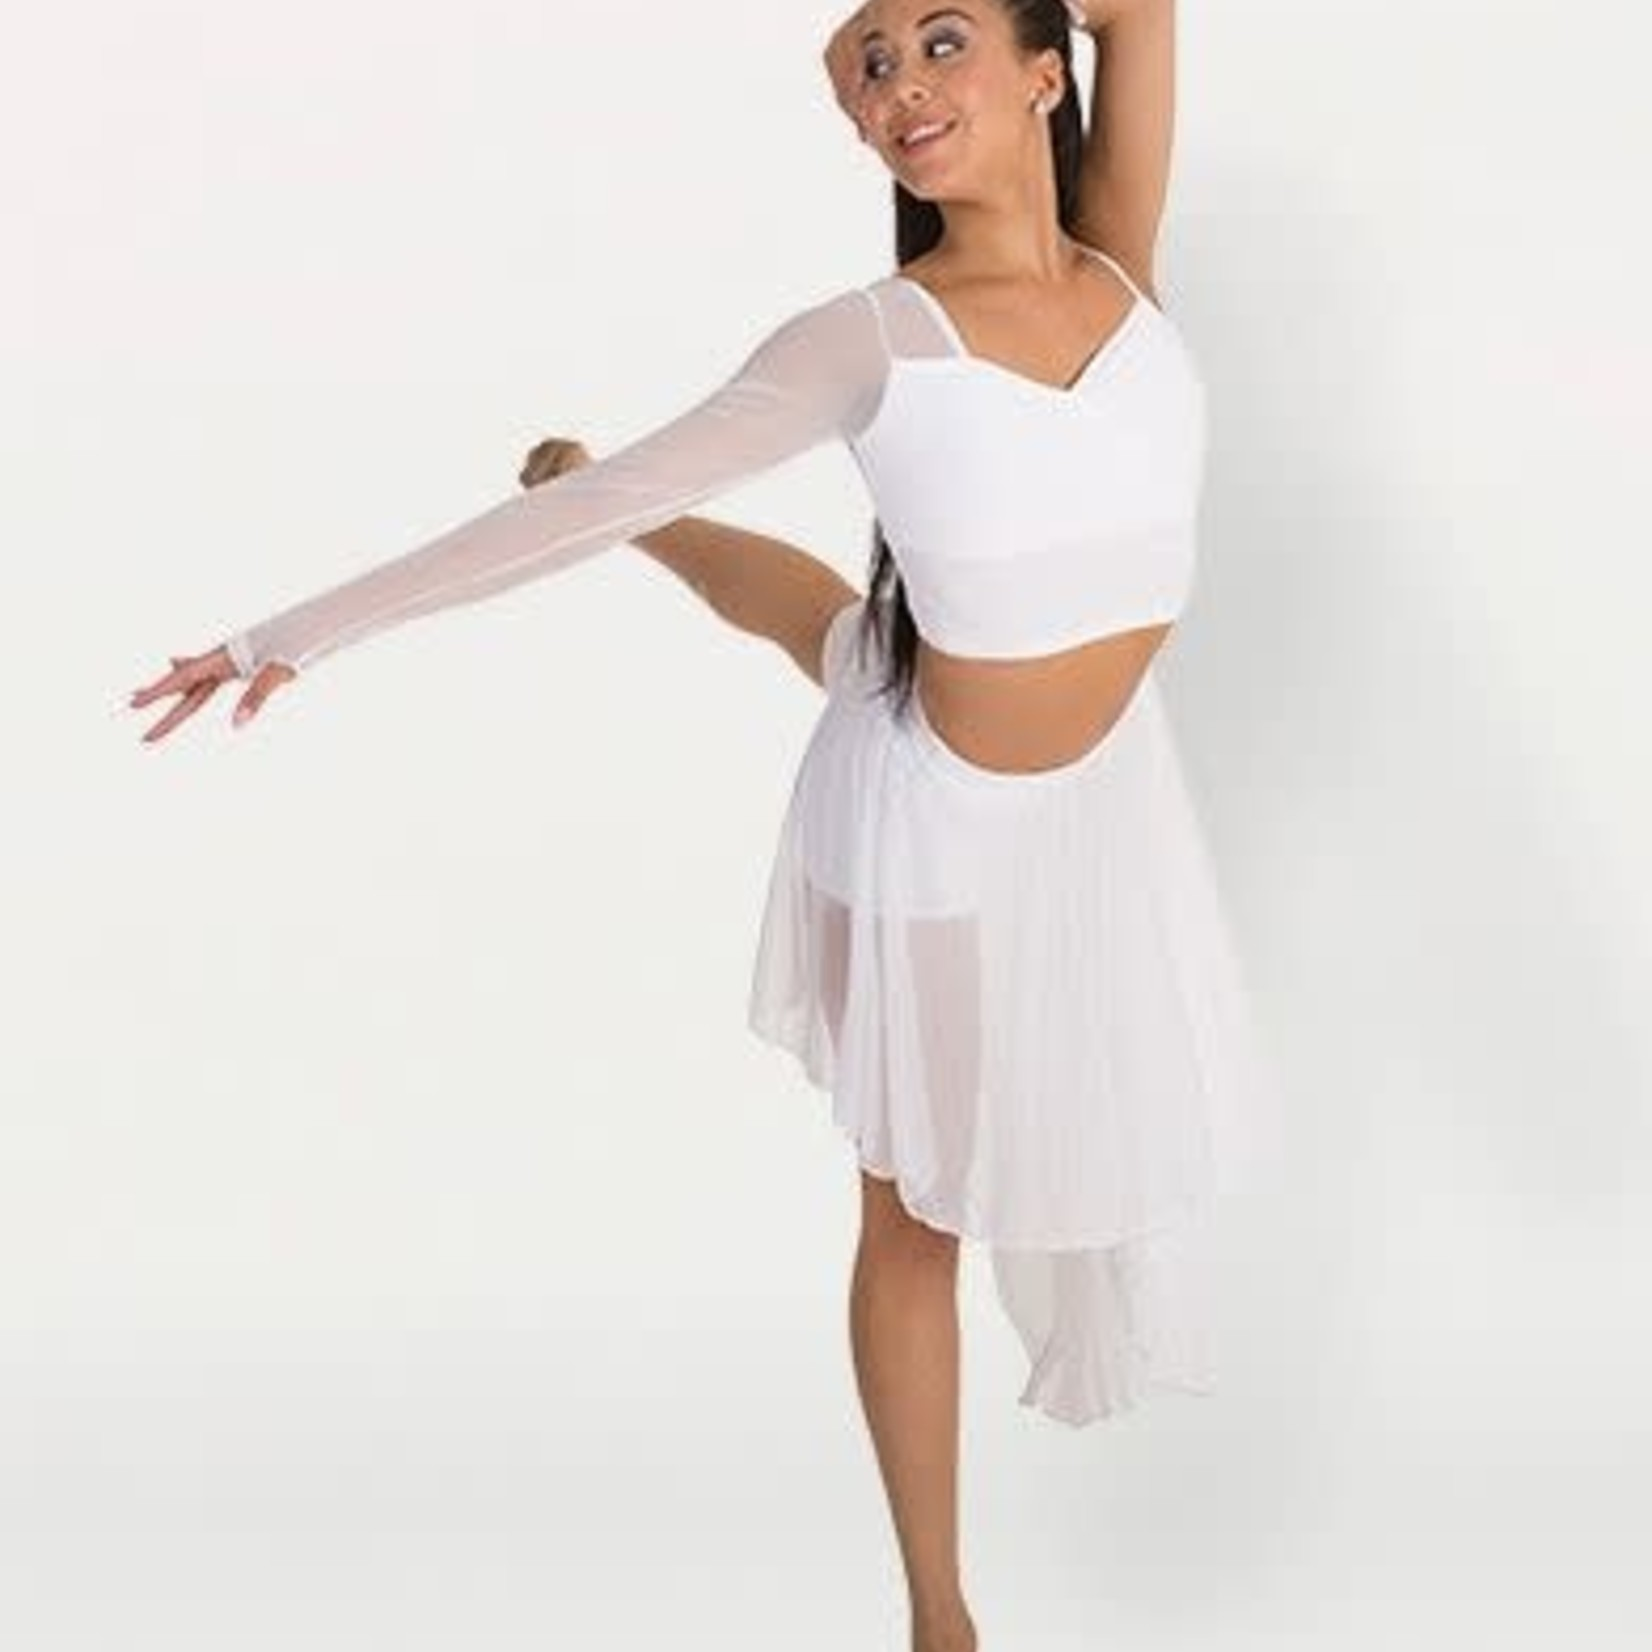 Body Wrappers Body Wrappers BWP9017 Asym Crop Top